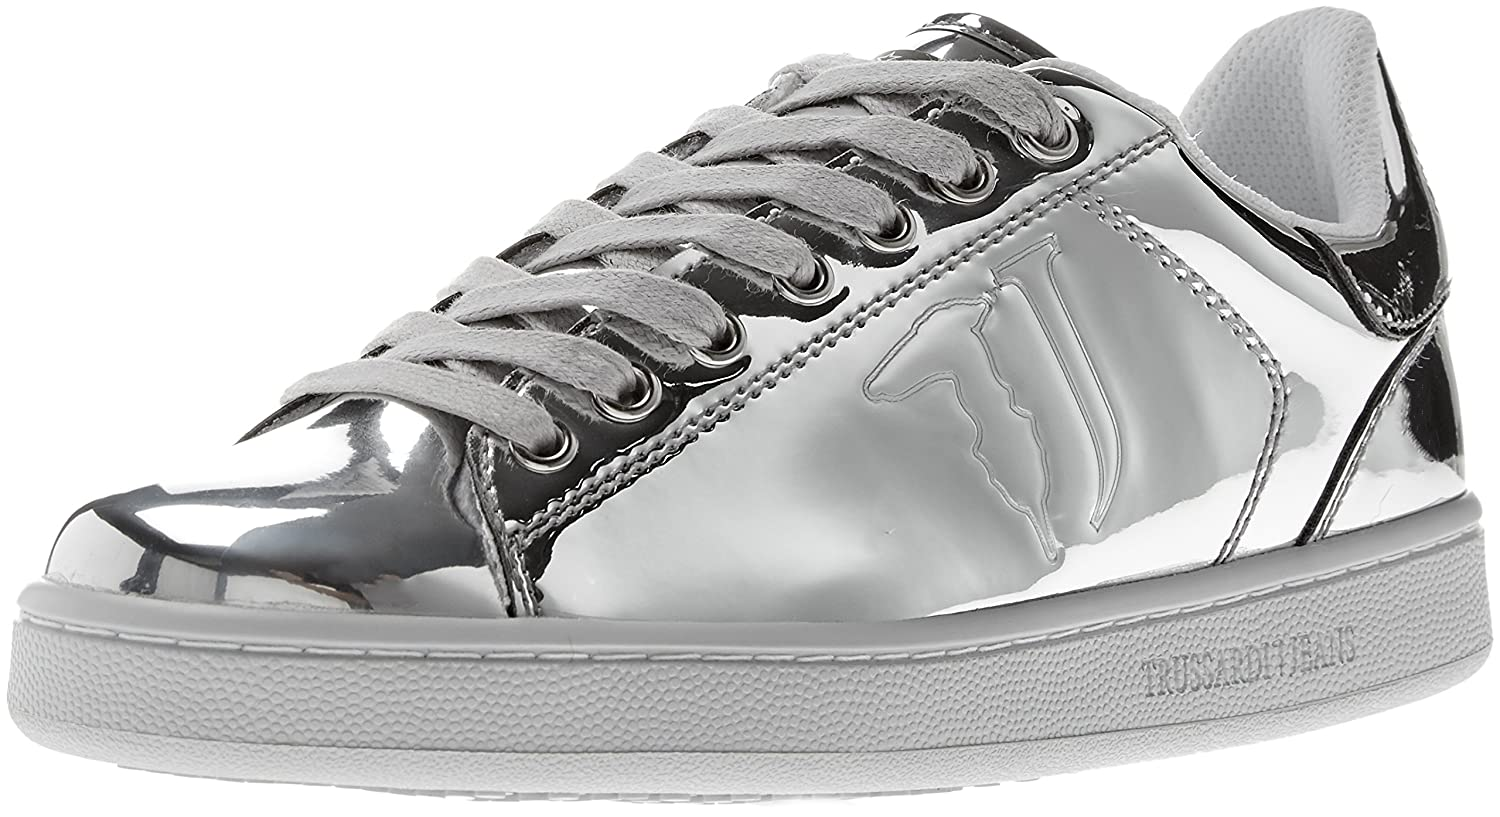 From China For Sale Discount 100% Original Trussardi Jeans Women's 79a00004-9y099999 Sneakers Outlet Discount U6L4lVXxMU